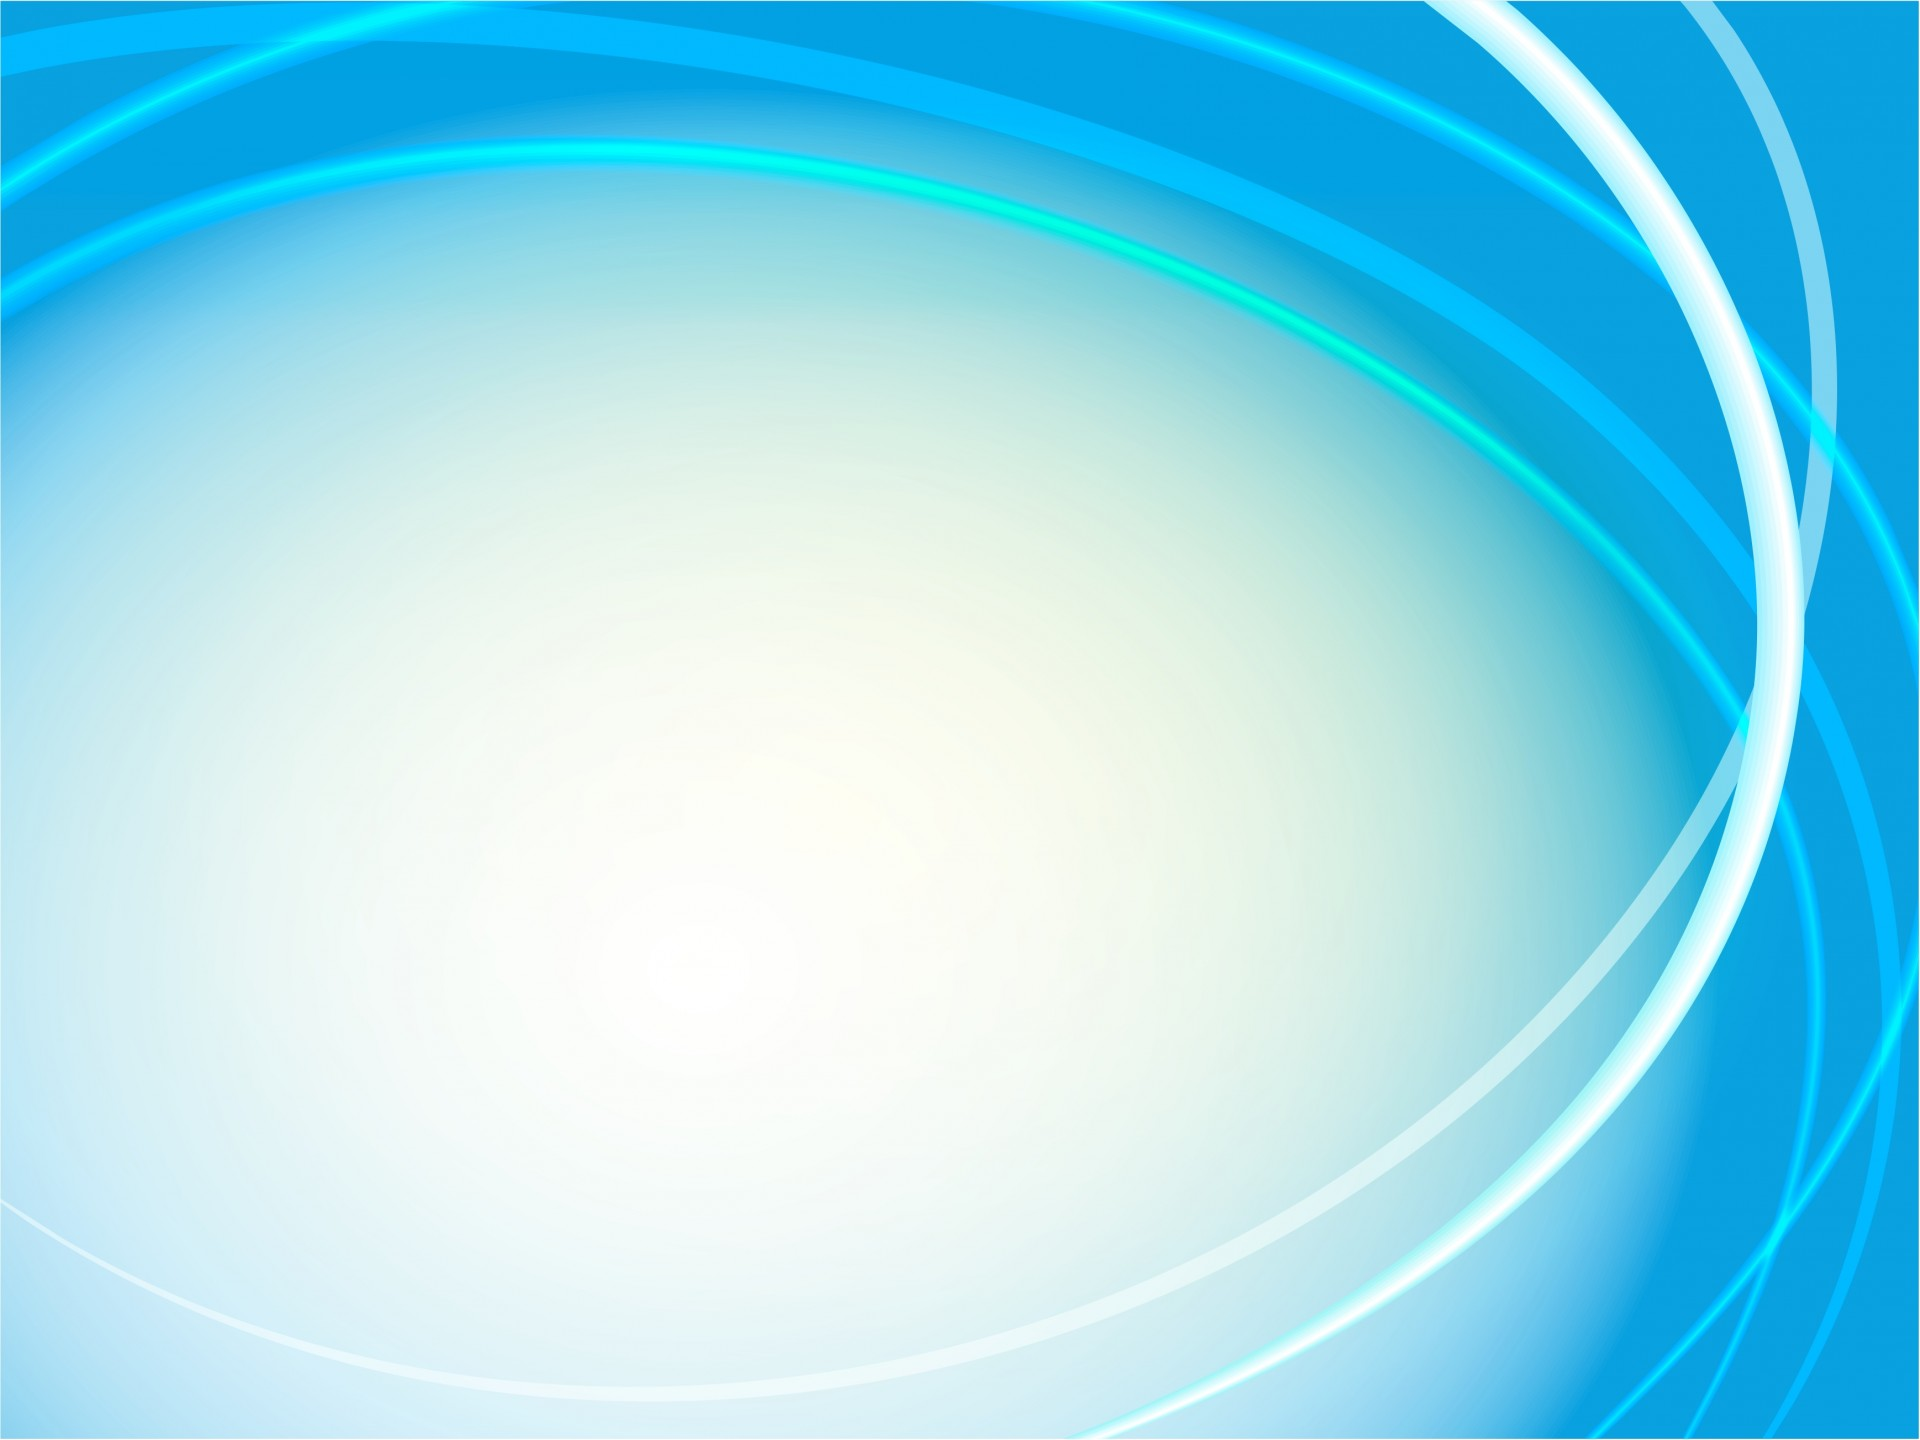 Background clipart blue. Swish free stock photo